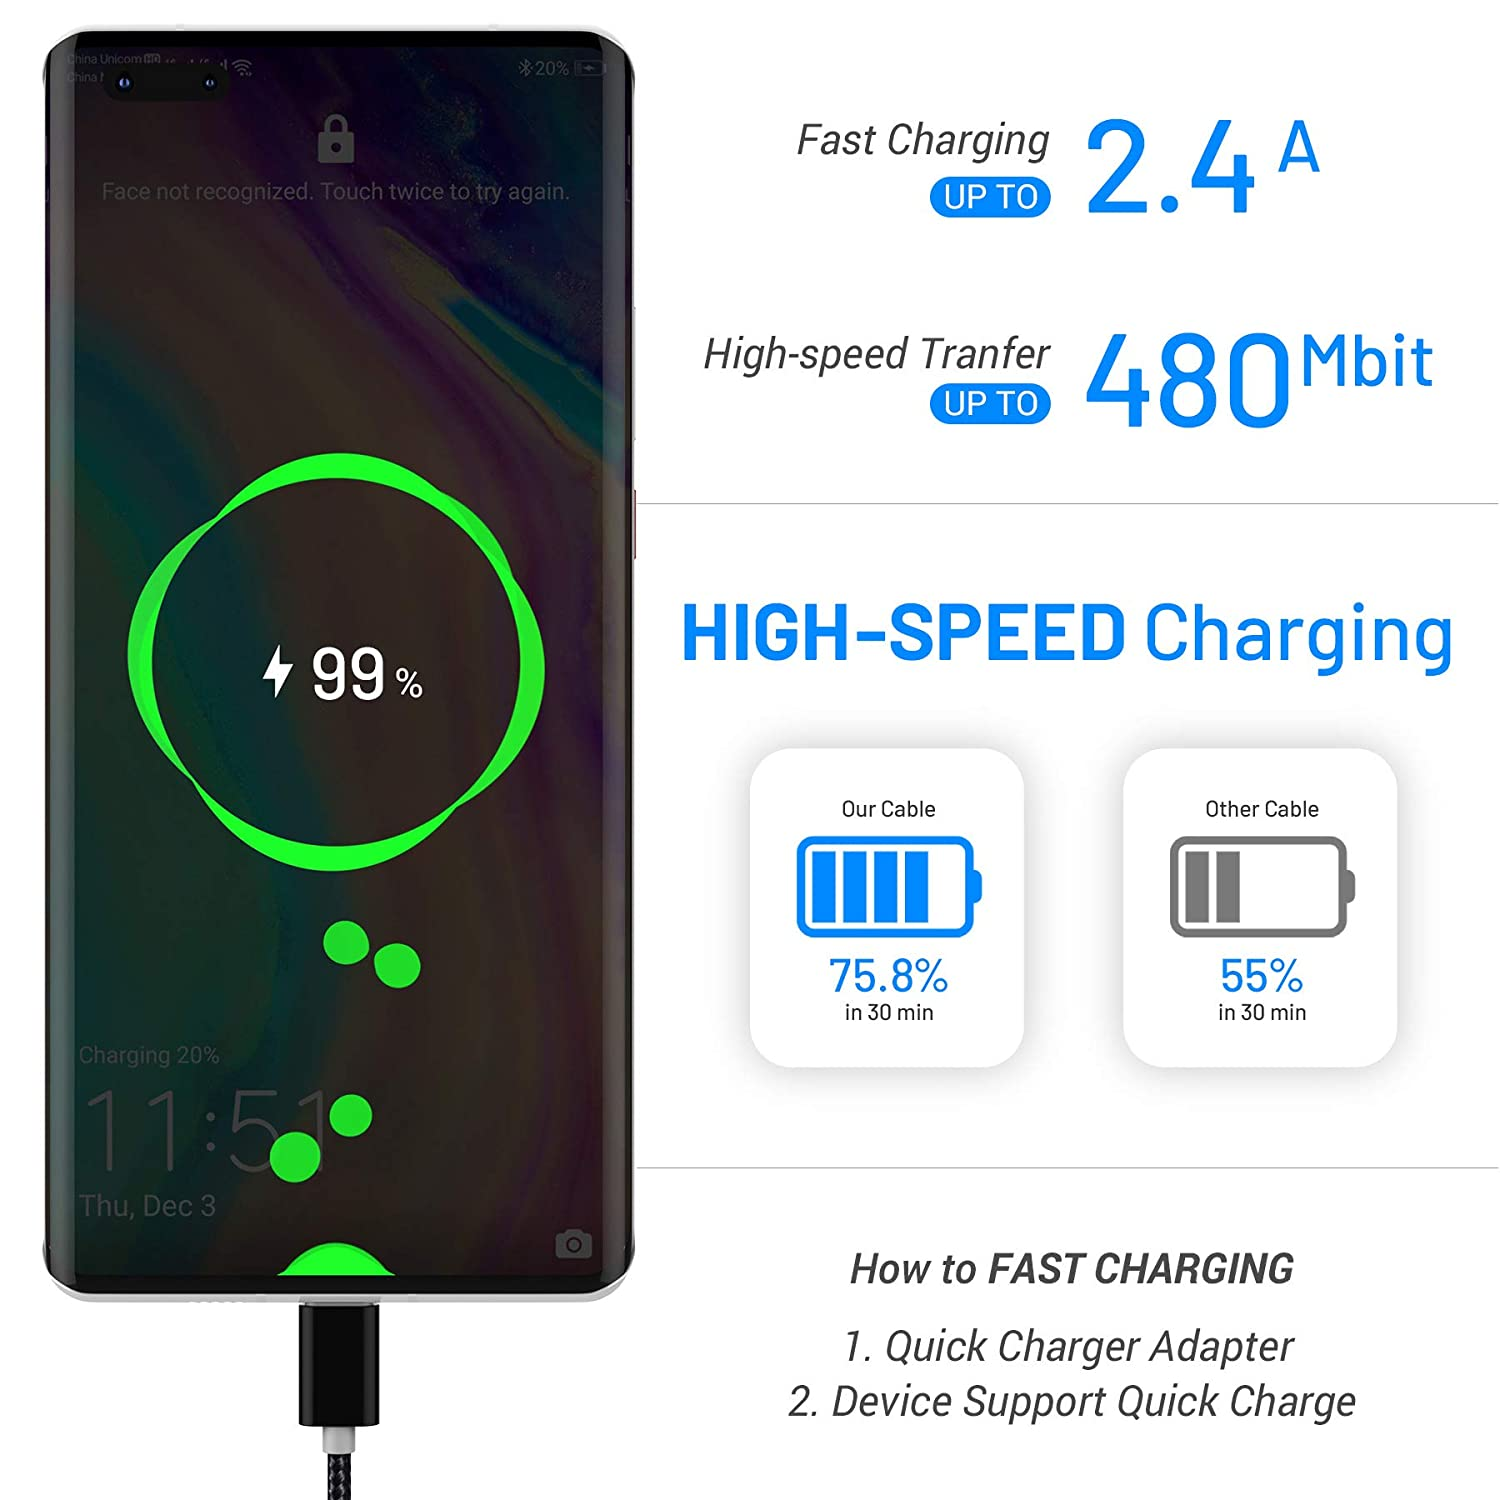 Google Pixel USB Type C Fast Charging Cable 4 Pack LG G7 V30 V20 G6 0.8//3.3//3.3//6.6FT Nylon Braided Data Sync Transfer Cord Compatible with Samsung Galaxy S10 S9 Note 9 8